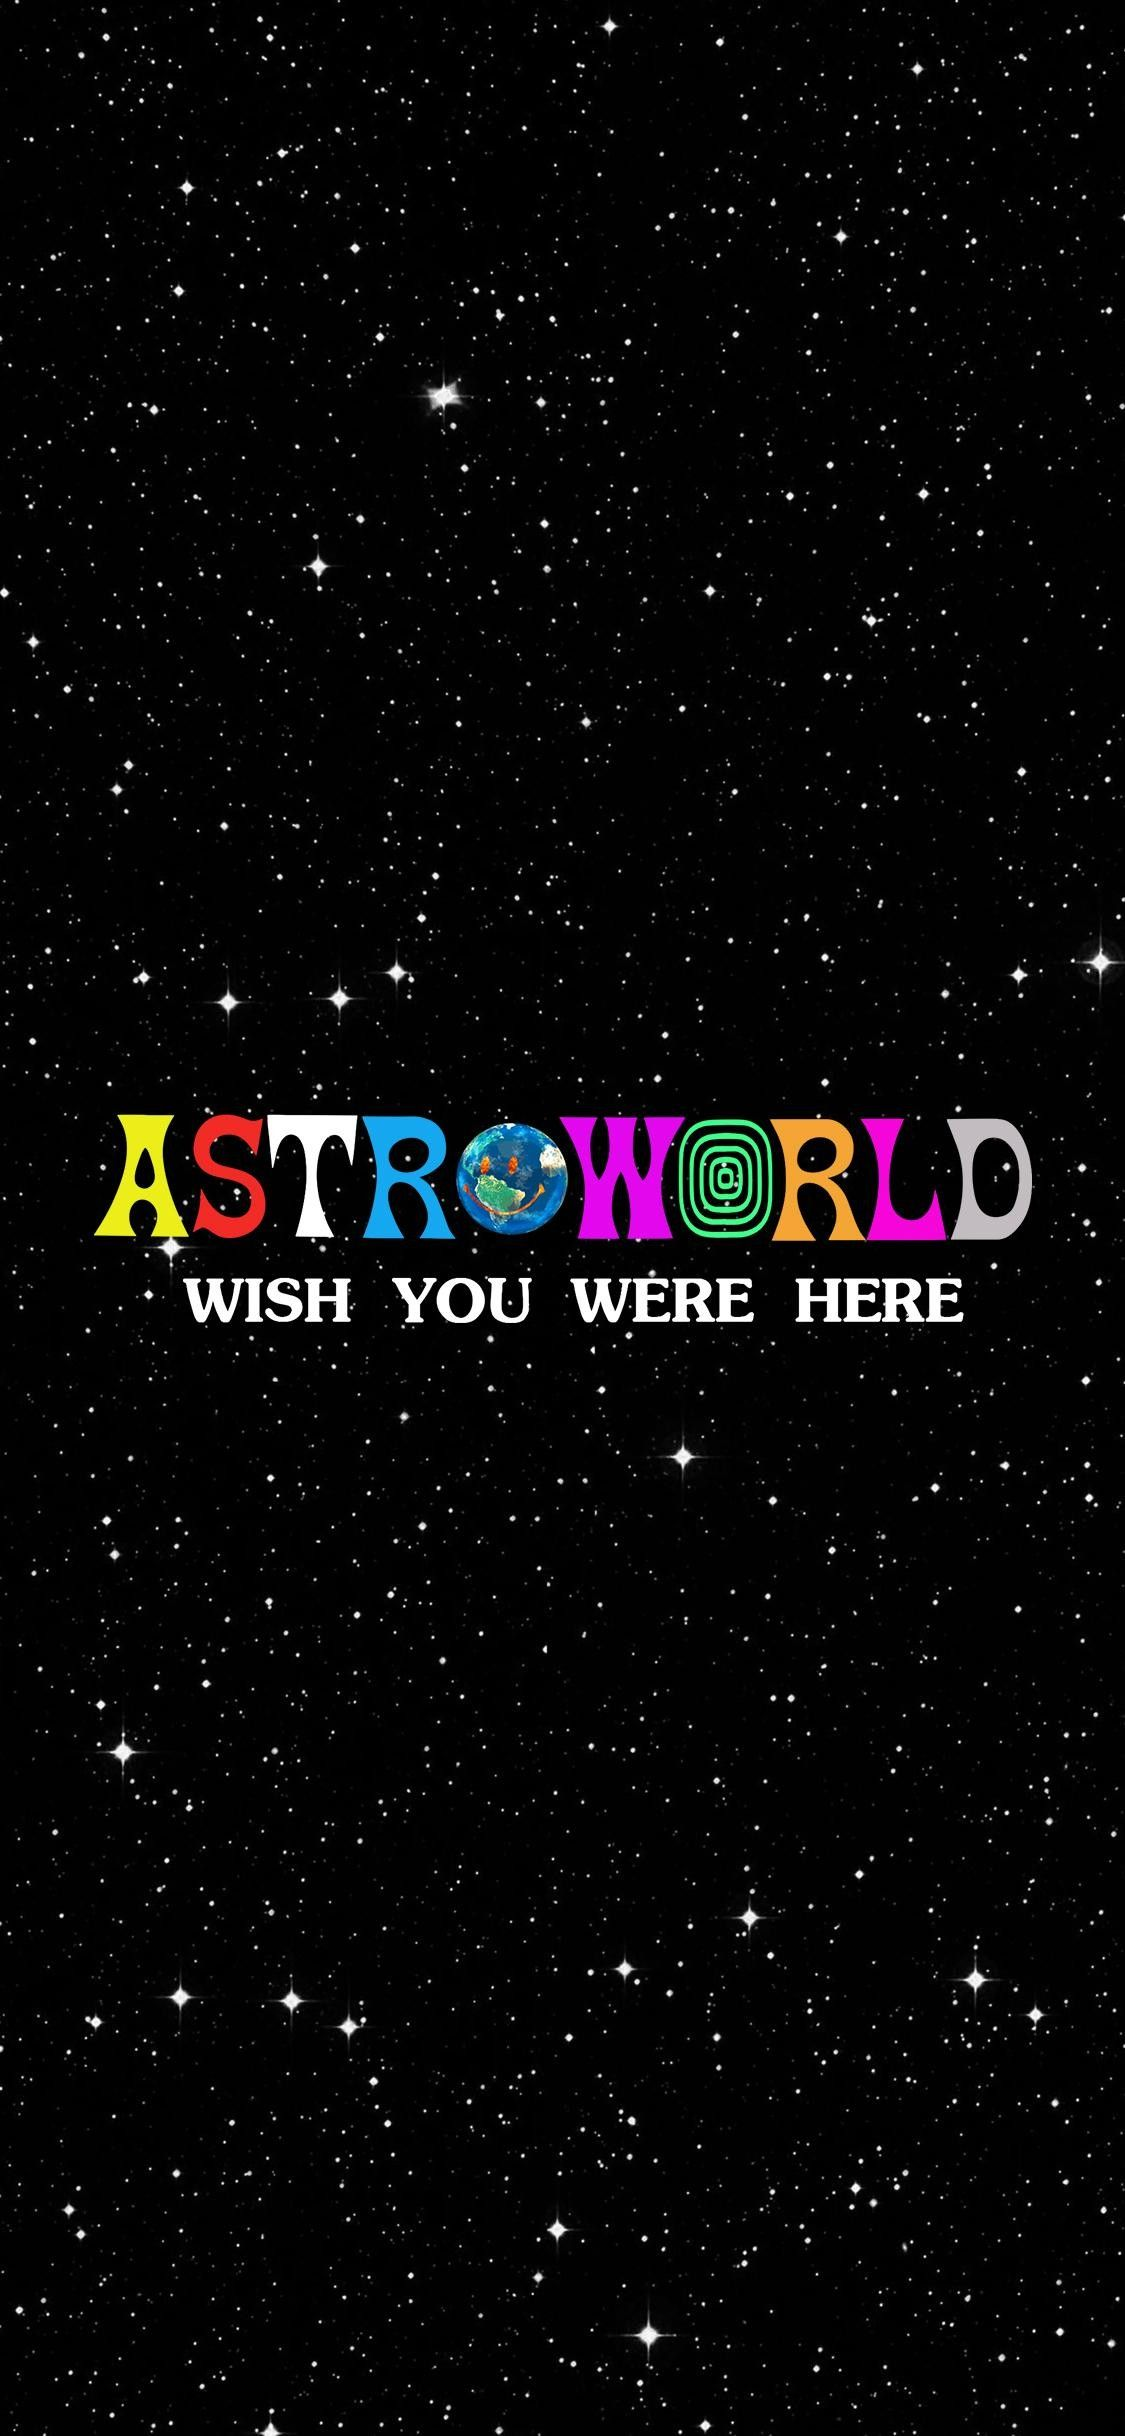 Travis Scott  La Flame  ASTROWORLD  Wish You Were Here  | wallpapers